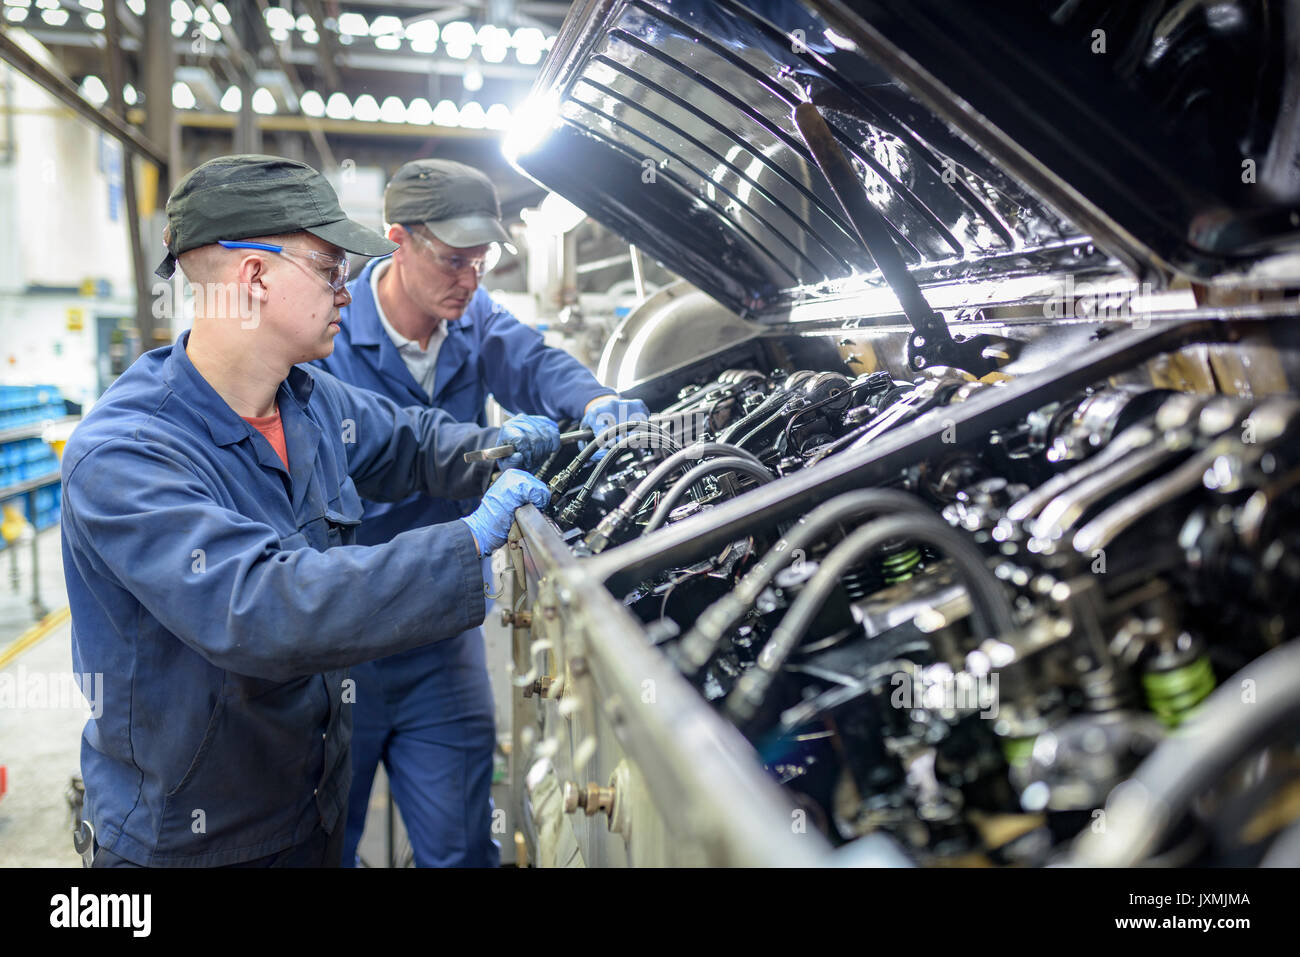 Engineer and apprentice working on locomotive engine in train works - Stock Image